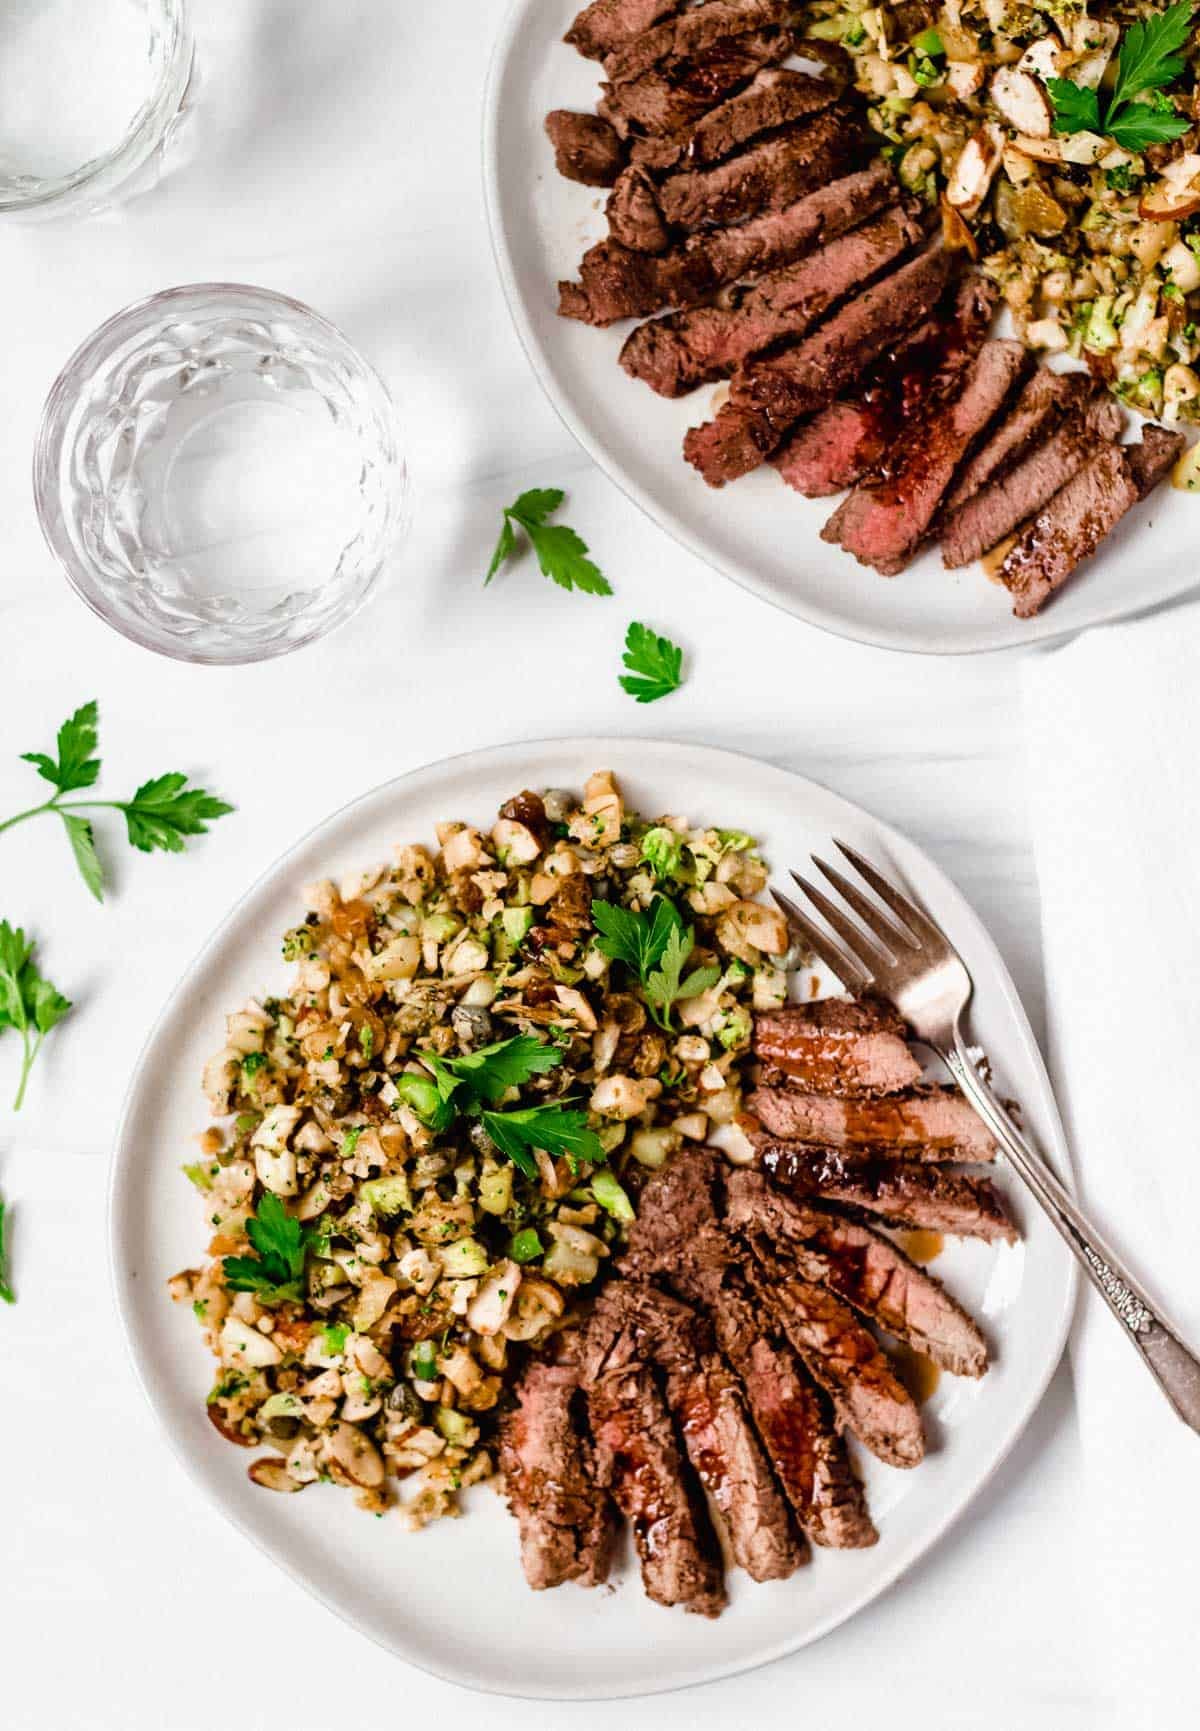 2 plates of steak and vegetables on white plates with 2 glasses of water and parsley on a white backdrop